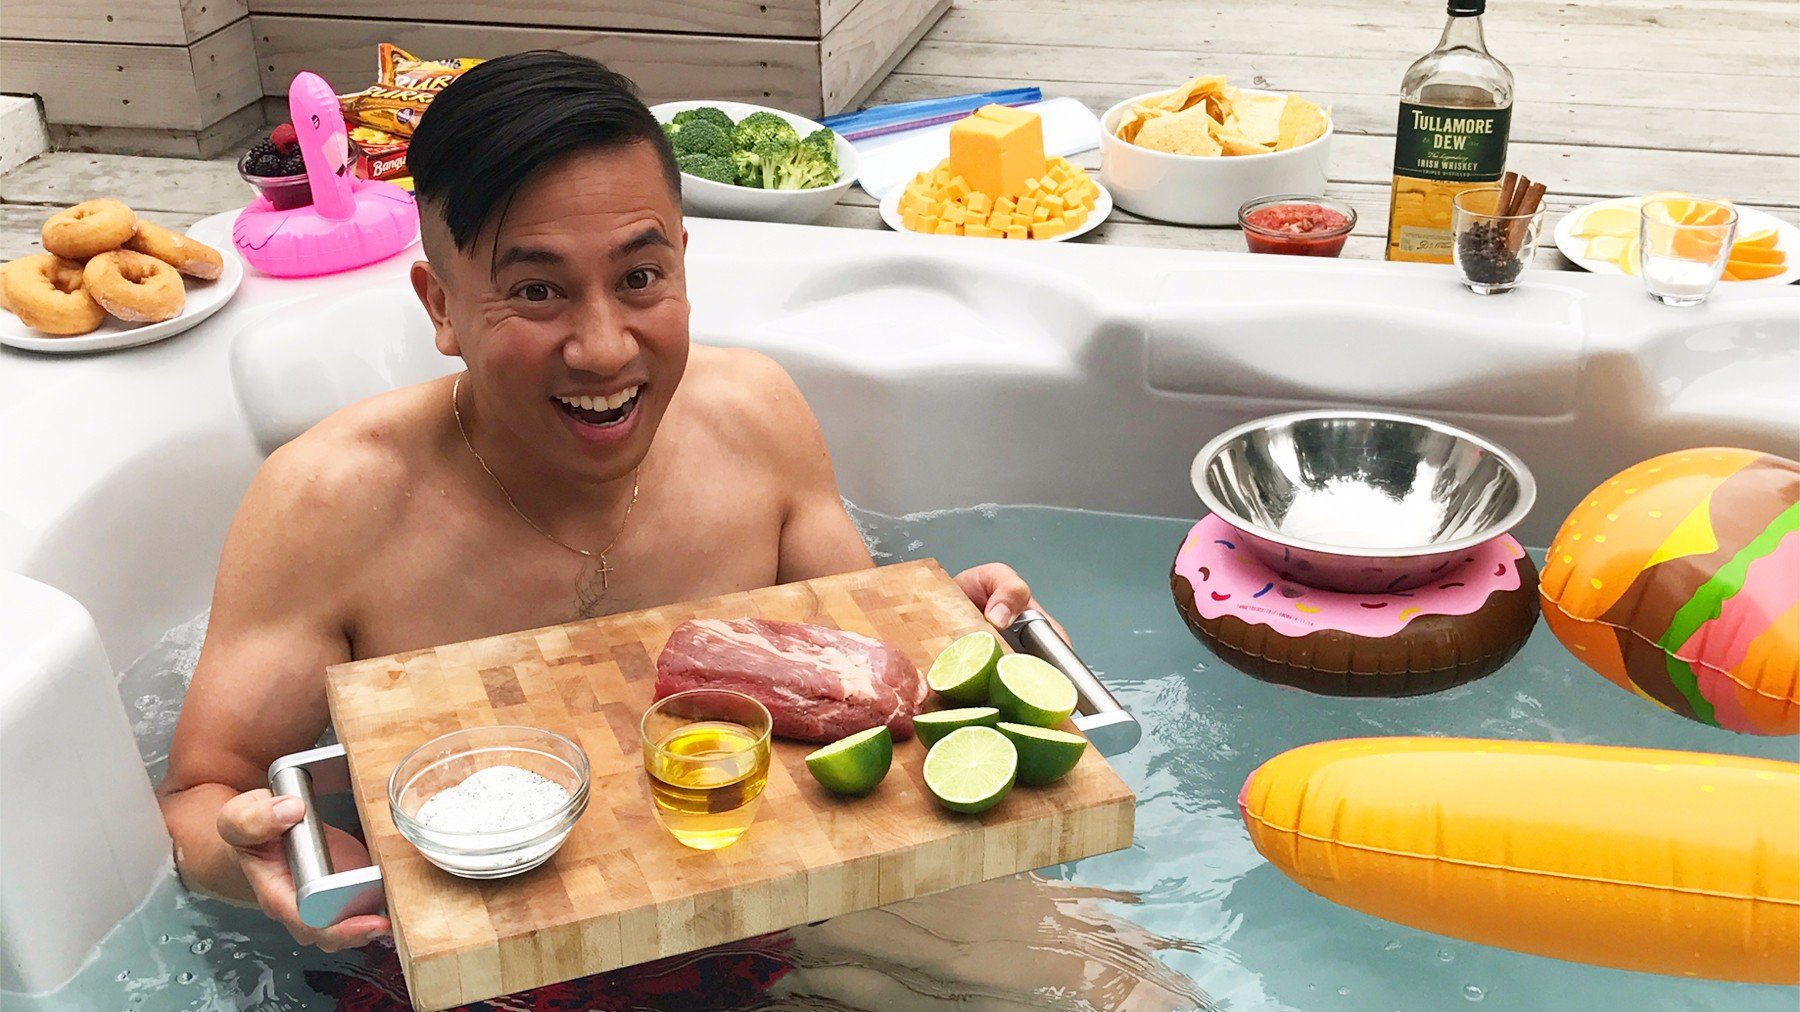 Can You Cook Dinner in a Hot Tub? Surprisingly, Yes!